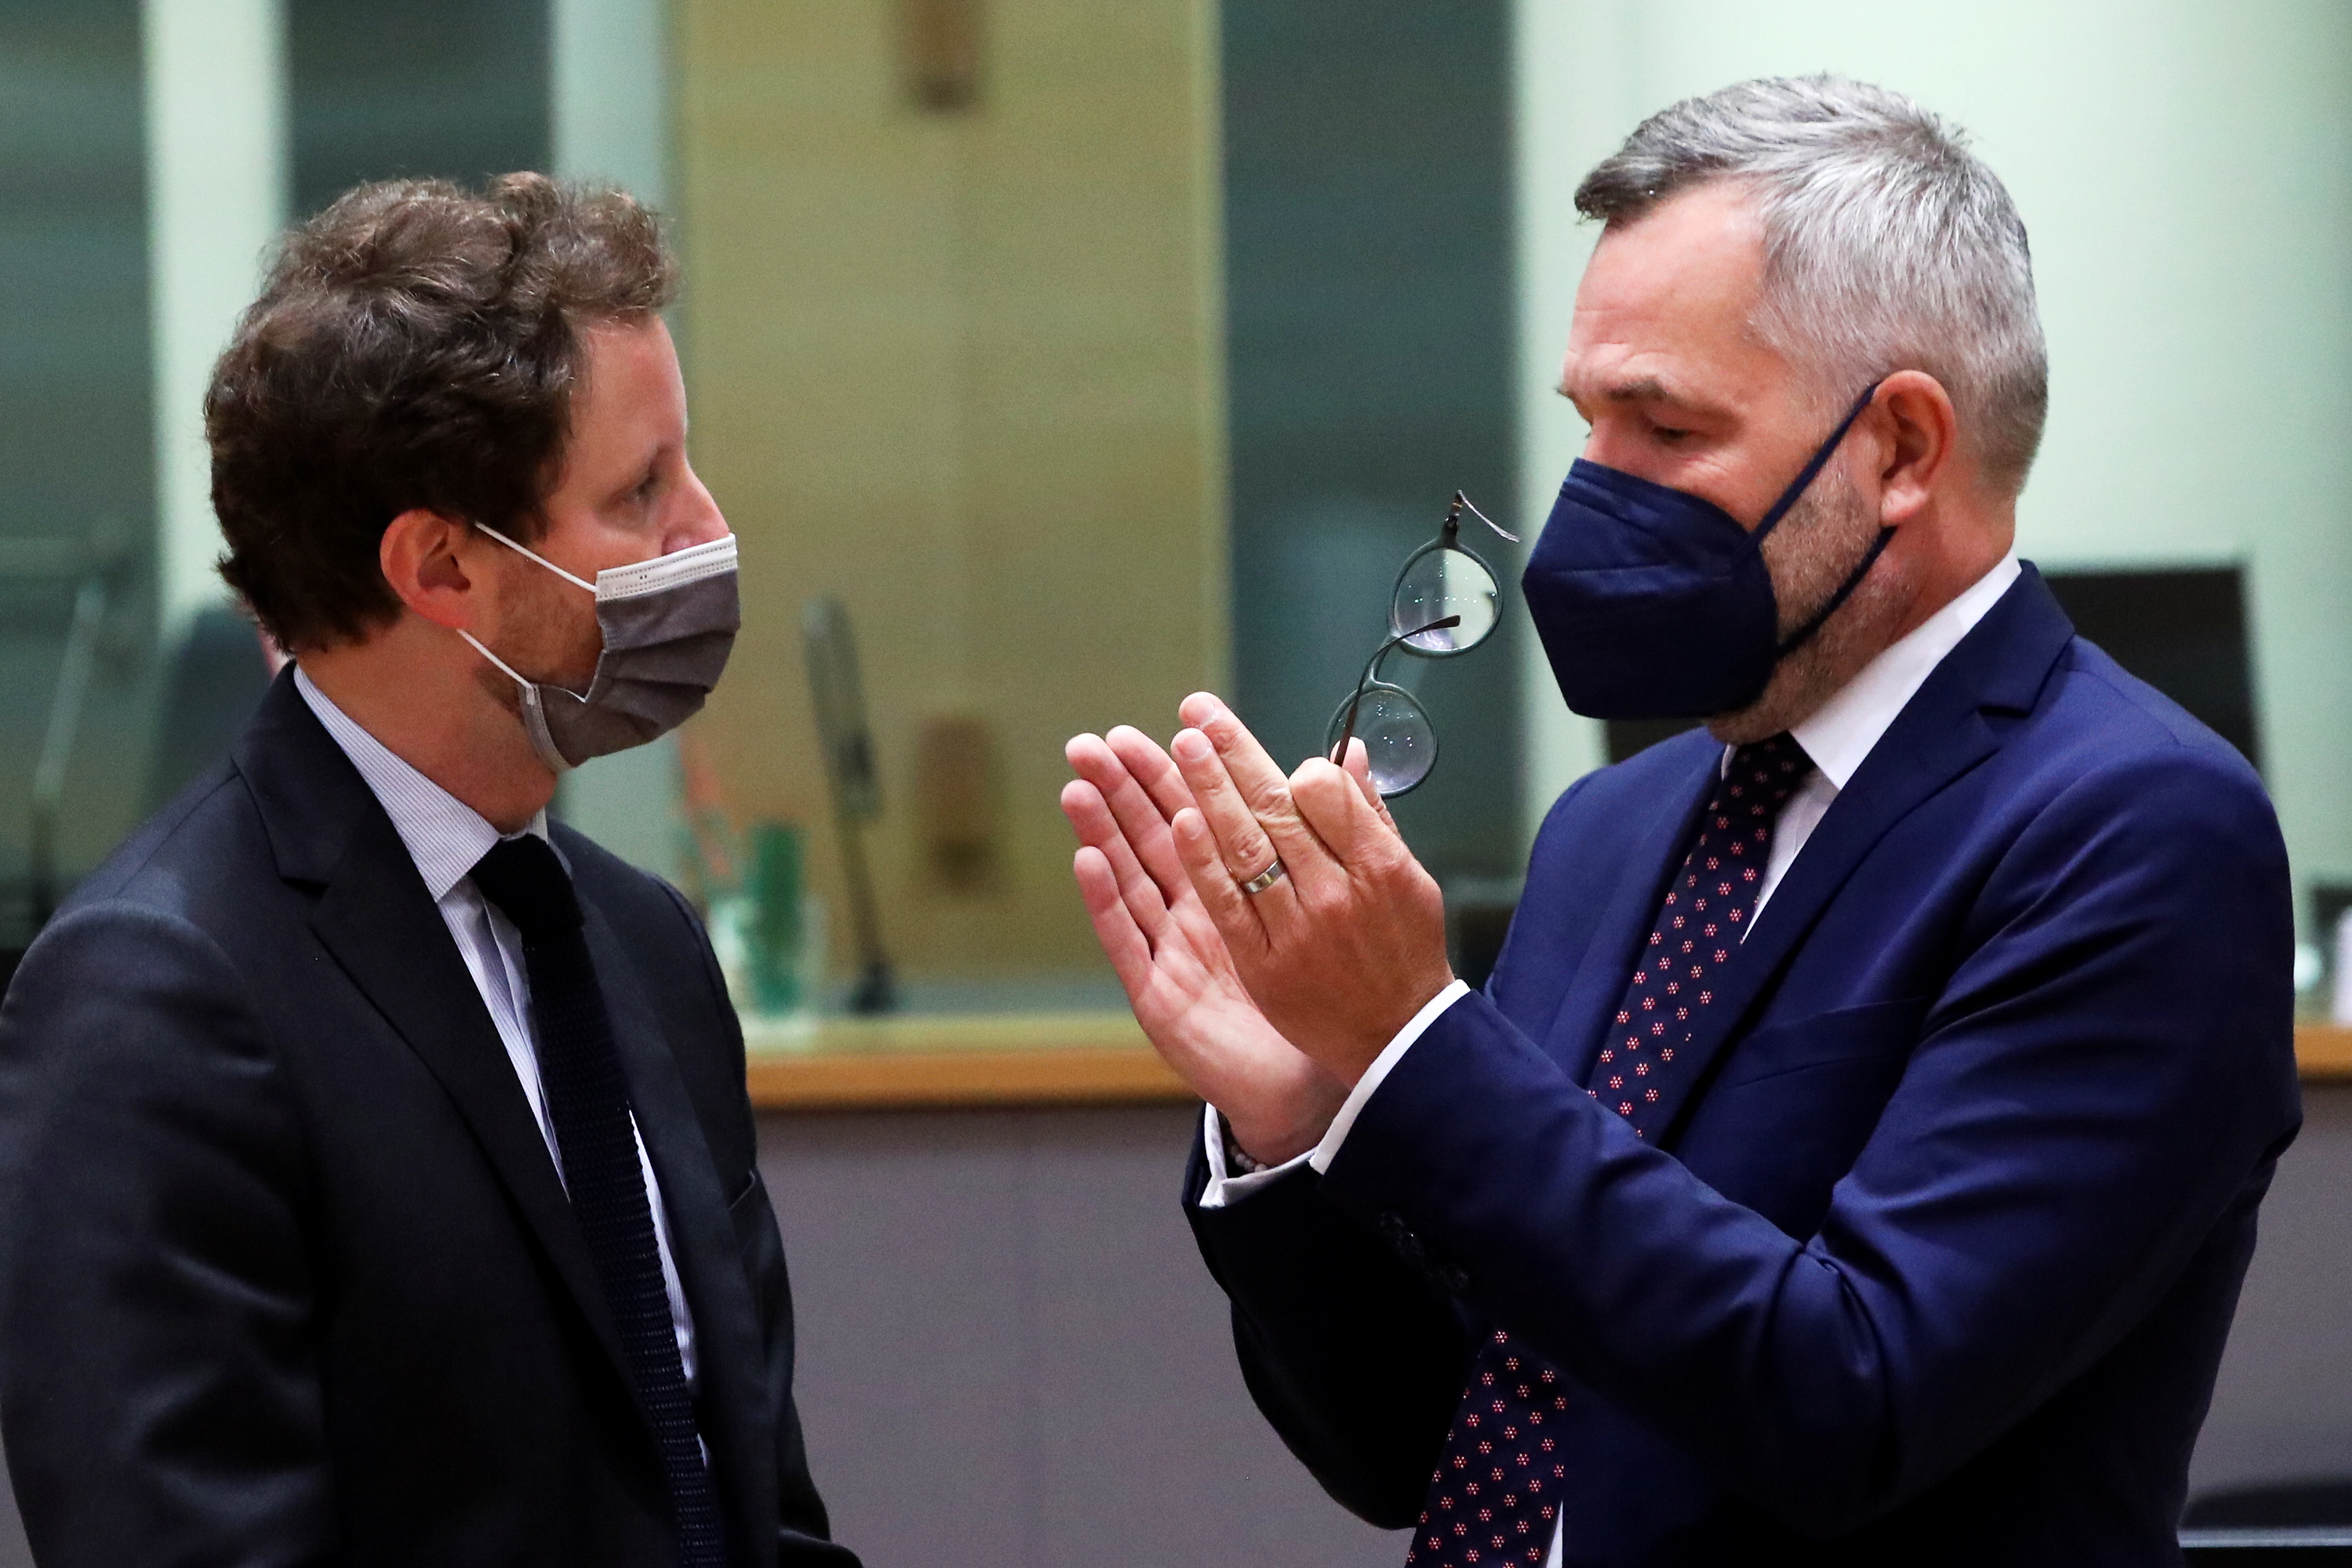 French minister for European affairs Clement Beaun and his German counterpart Michael Roth meet during an EU general affairs council in Brussels, Belgium September 21, 2021. REUTERS/Yves Herman